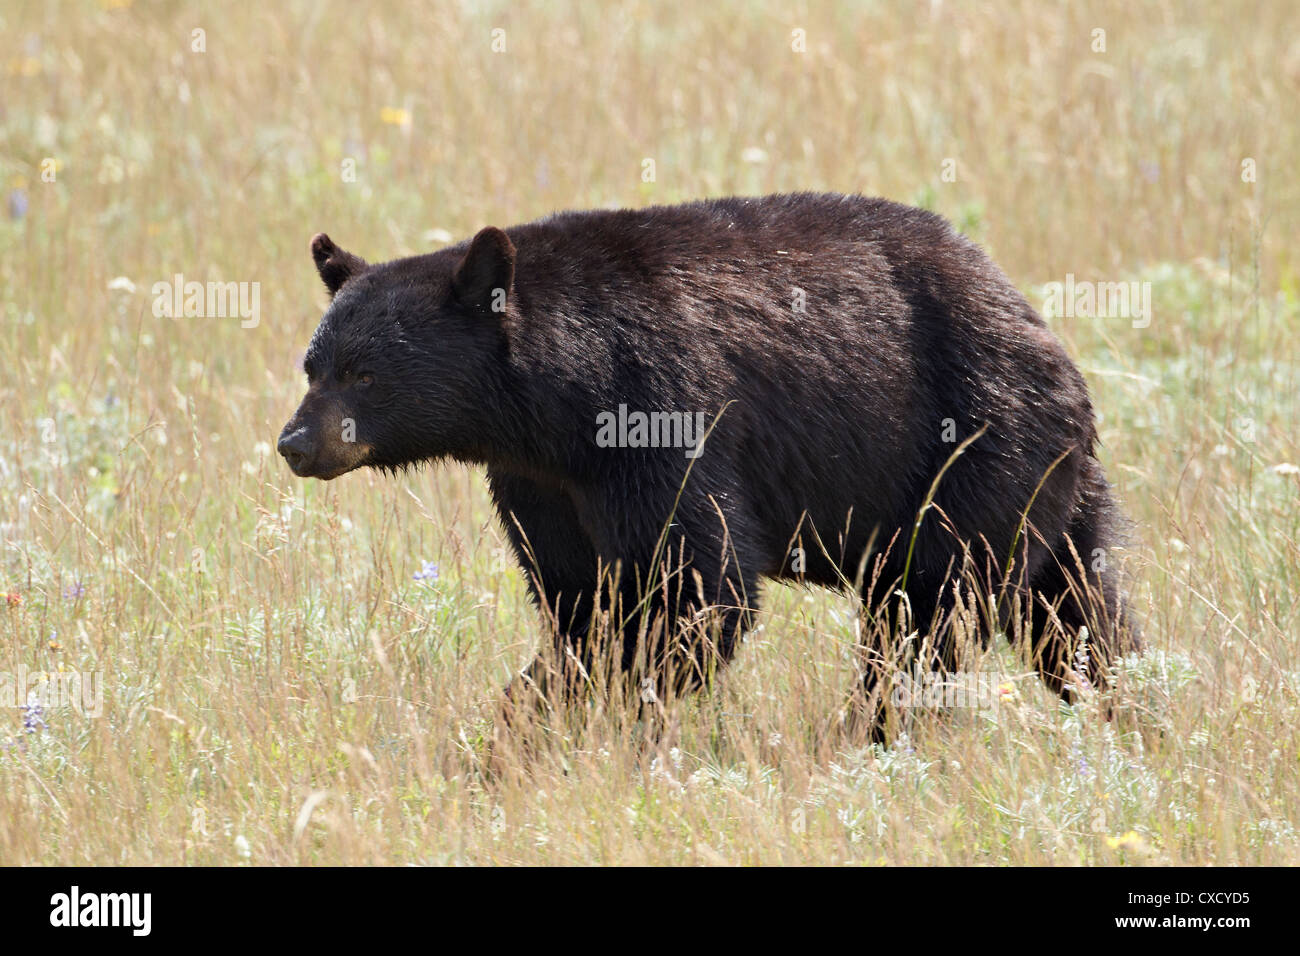 Black bear (Ursus americanus), Waterton Lakes National Park, Alberta, Canada, North America - Stock Image